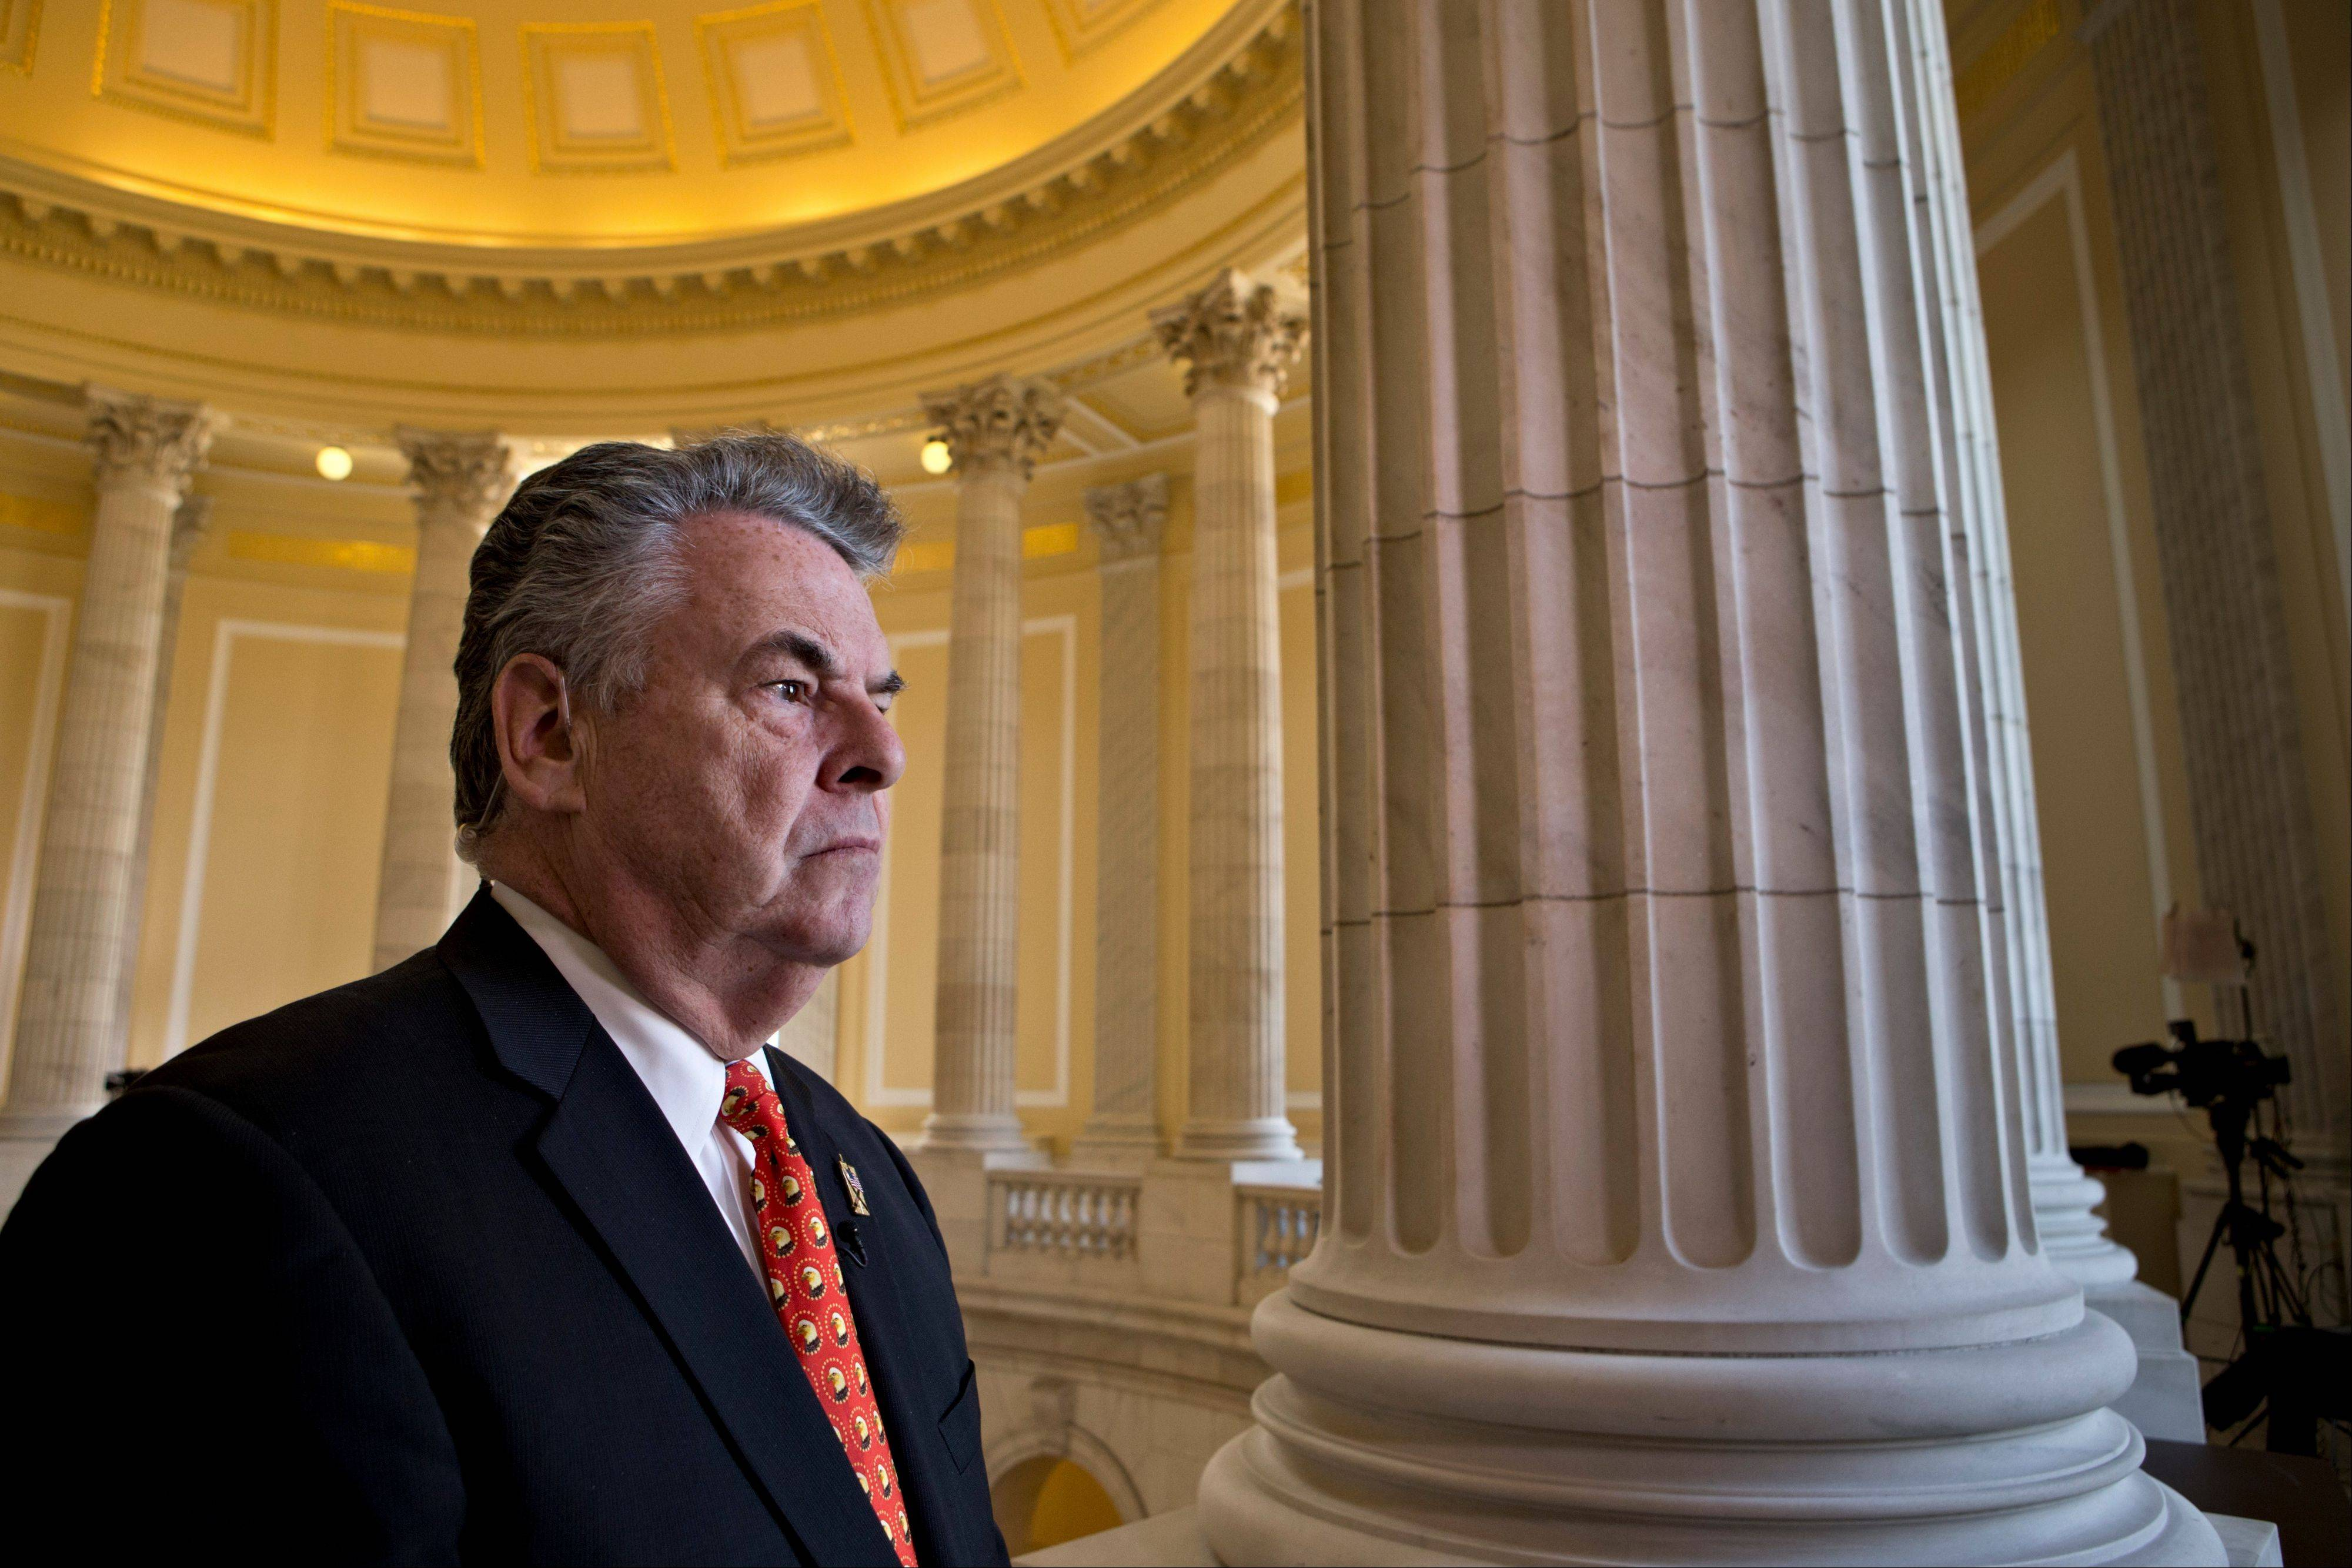 Rep. Peter King, a New York Republican, whose district includes Long Island, expresses his anger and disappointment Wednesday during a cable TV interview on Capitol Hill, after the House GOP leadership decided late New Year�s Day to allow the current term of Congress to end without holding a vote on aid for victims of Superstorm Sandy.